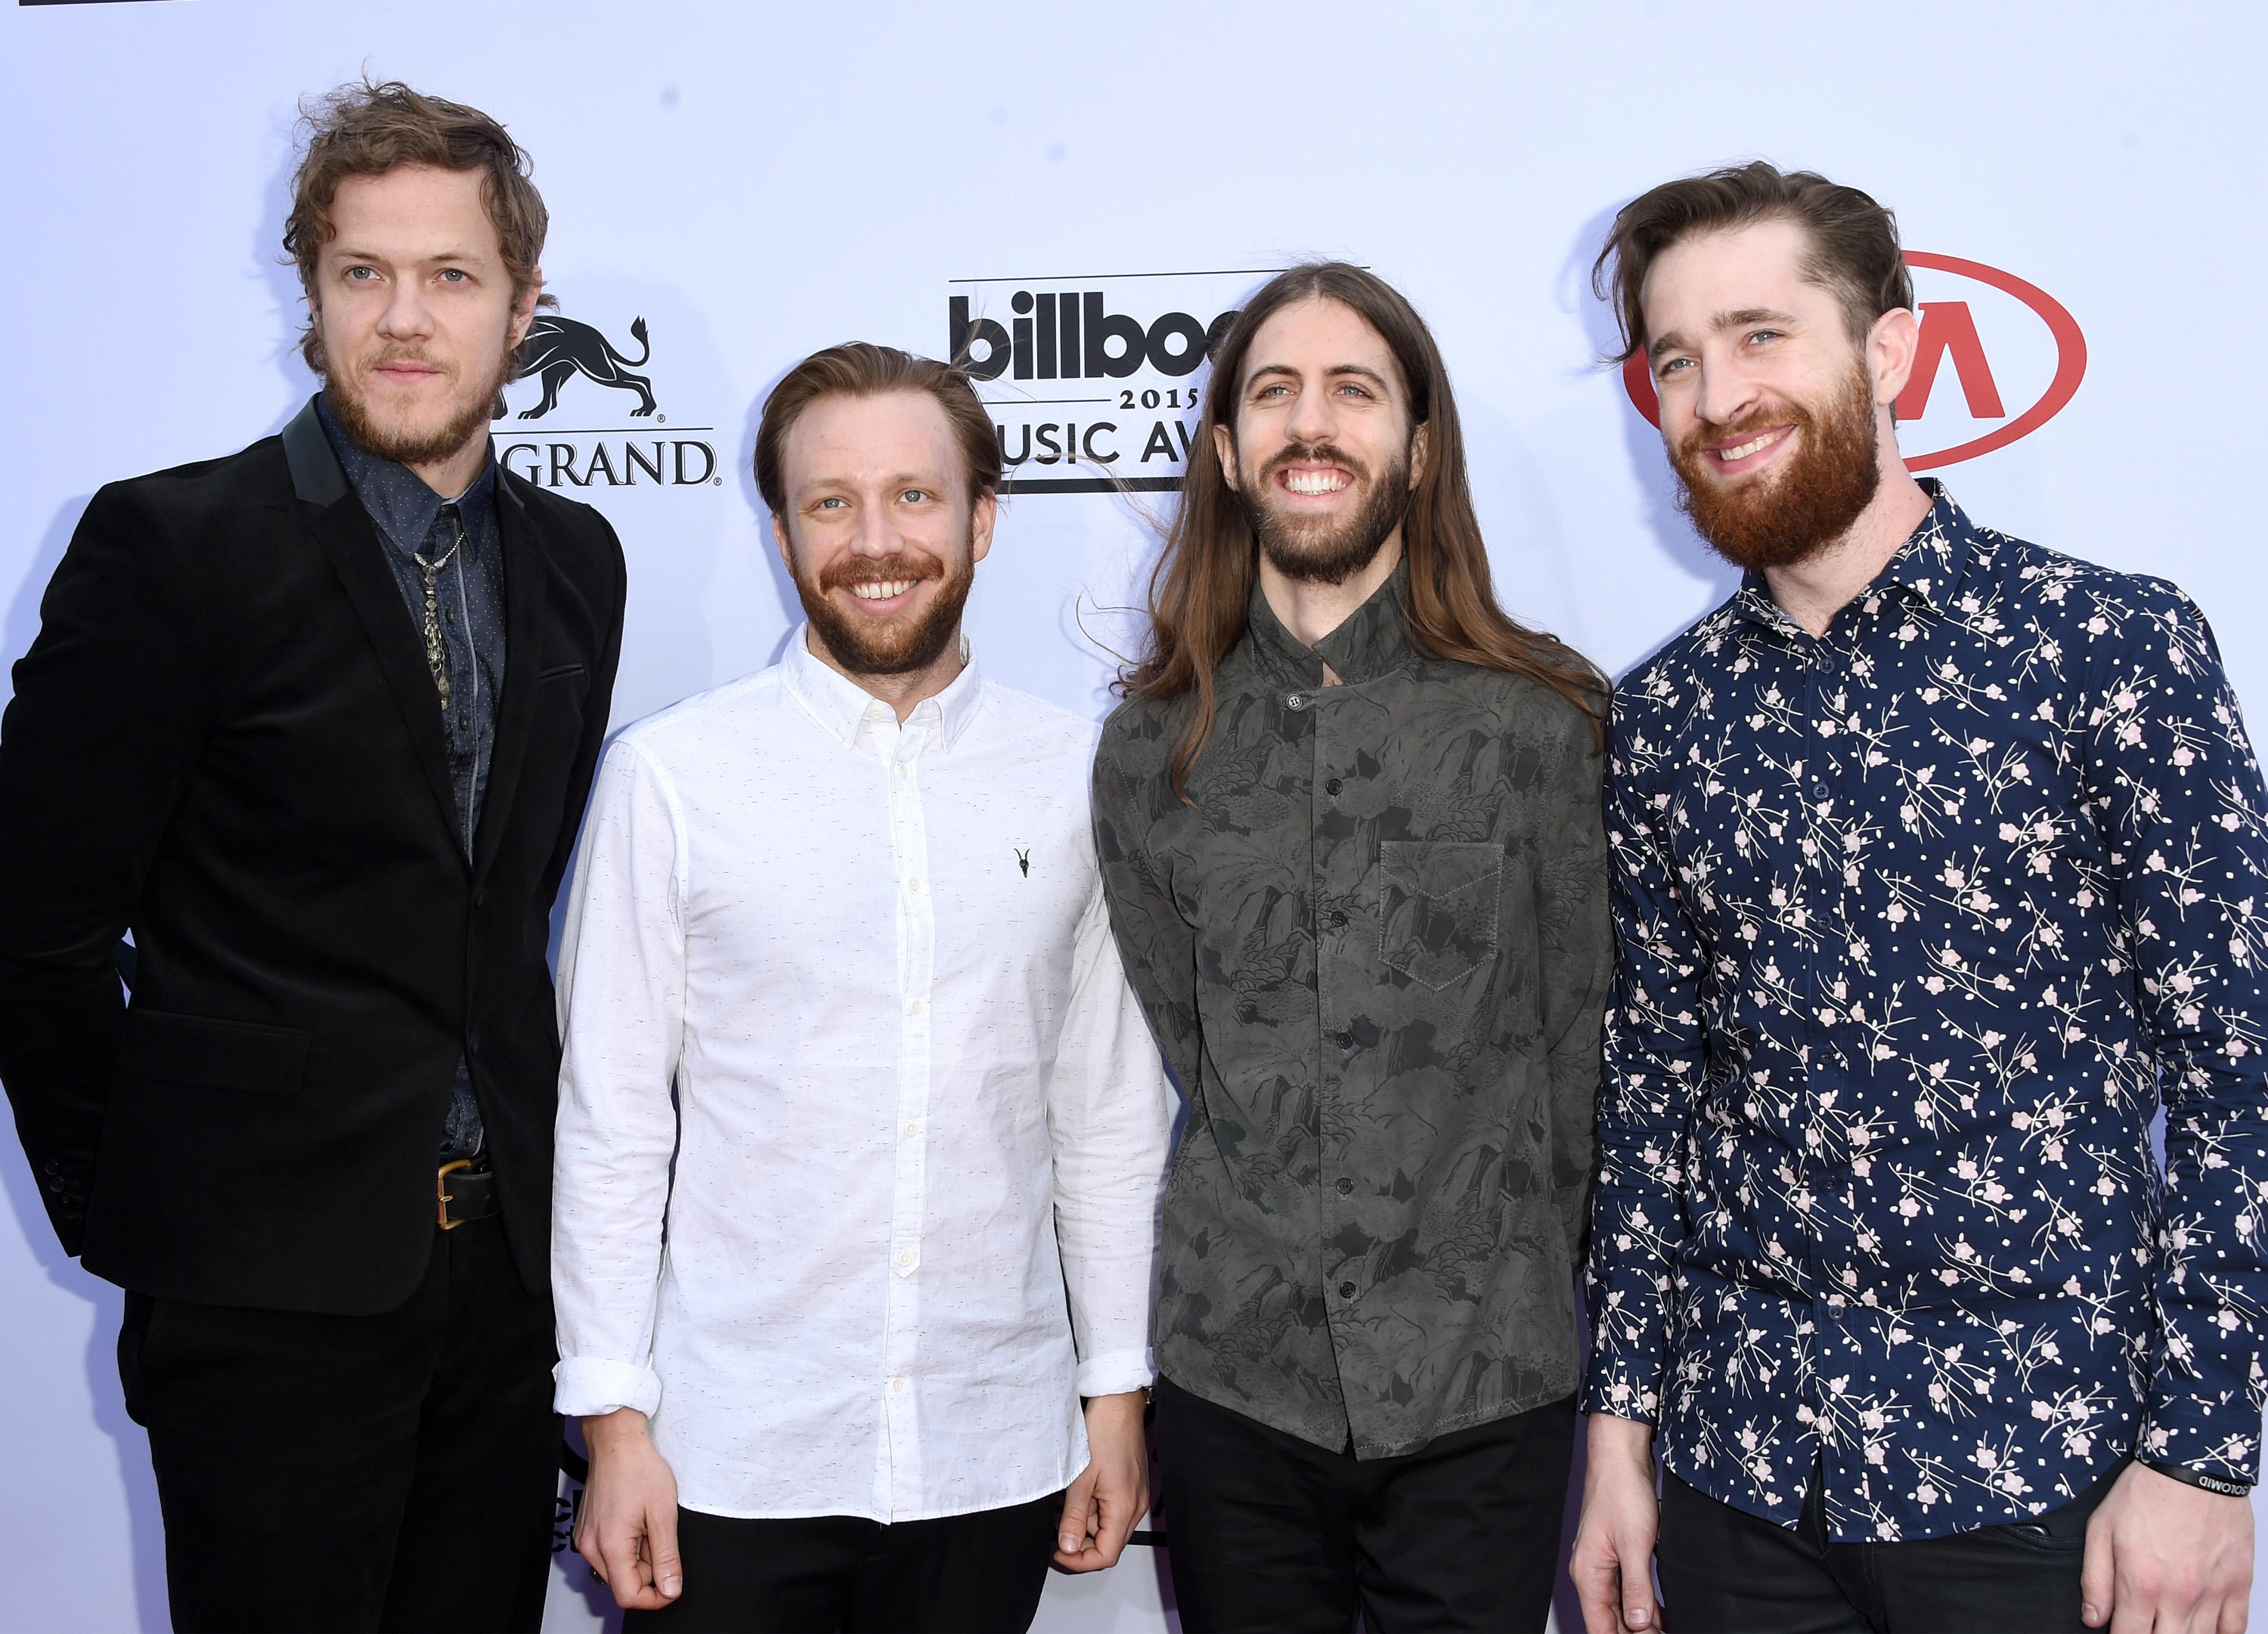 LAS VEGAS, NV - MAY 17:  (L-R) Musicians Dan Reynolds, Ben McKee, Wayne Sermon, and Daniel Platzman of Imagine Dragons attend the 2015 Billboard Music Awards at MGM Grand Garden Arena on May 17, 2015 in Las Vegas, Nevada.  (Photo by Jason Merritt/Getty Images)